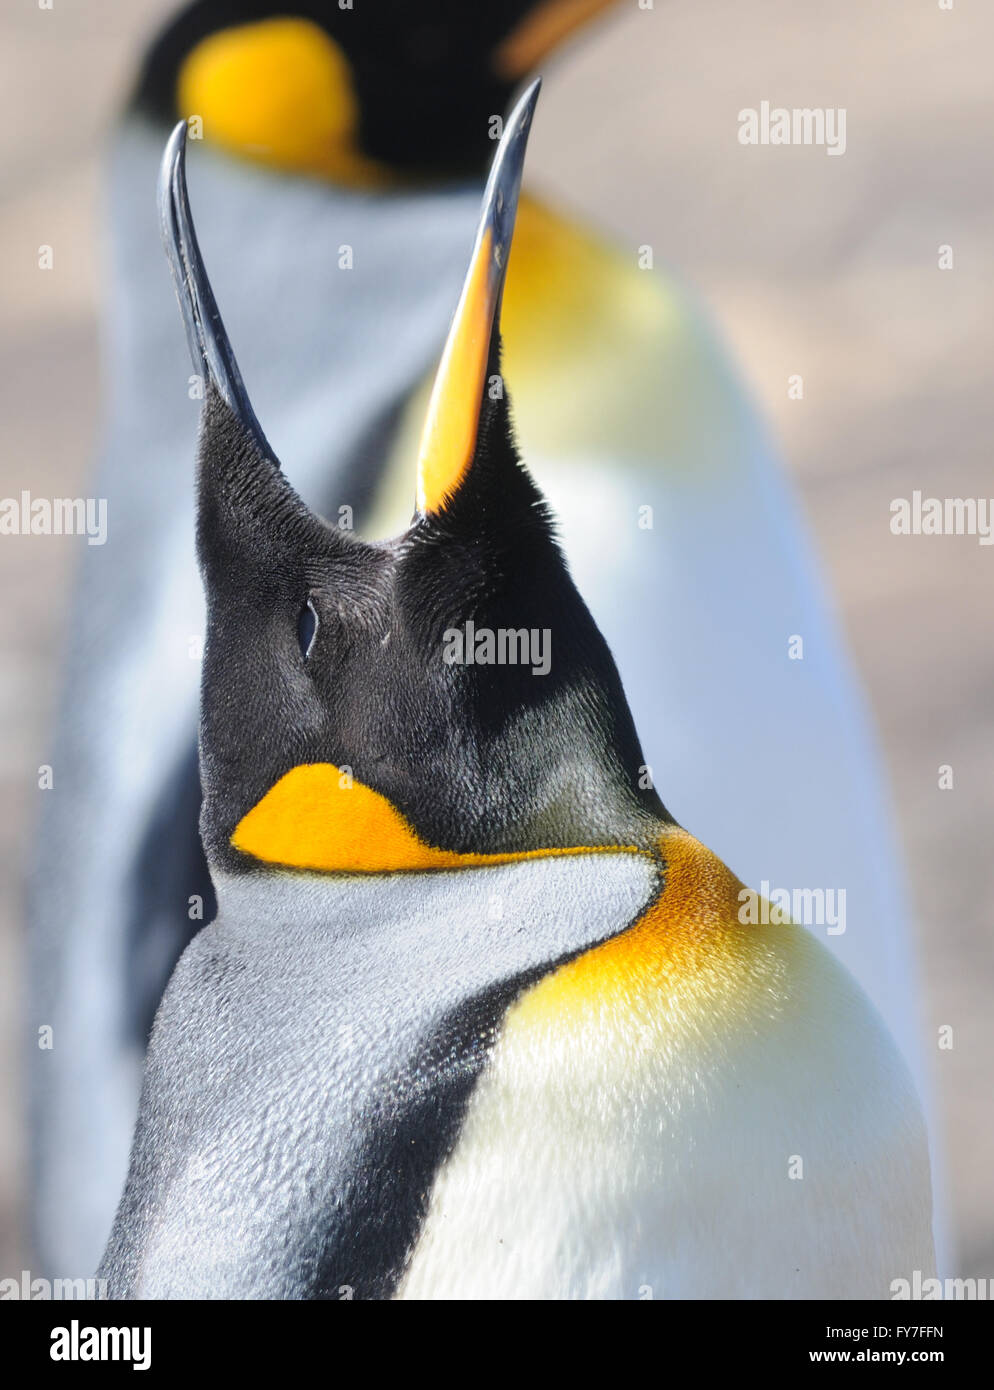 A King penguin (Aptenodytes patagonicus) calls.  Saunders Island, Falkland Islands. - Stock Image